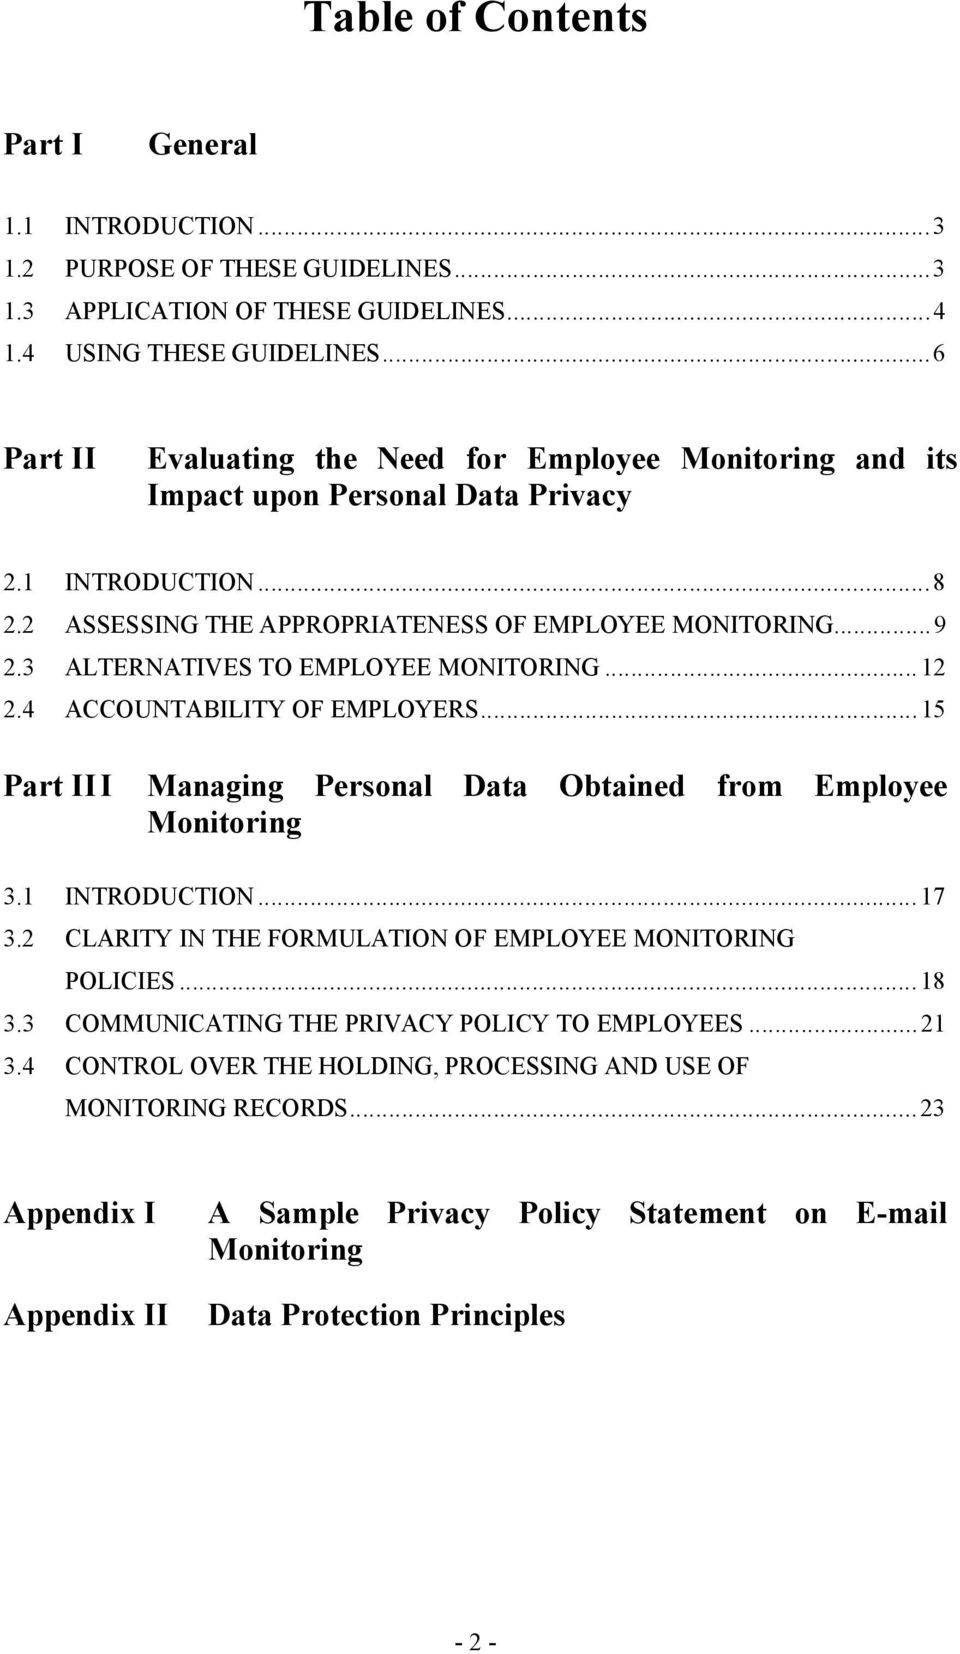 3 ALTERNATIVES TO EMPLOYEE MONITORING... 12 2.4 ACCOUNTABILITY OF EMPLOYERS...15 Part III Managing Personal Data Obtained from Employee Monitoring 3.1 INTRODUCTION...17 3.